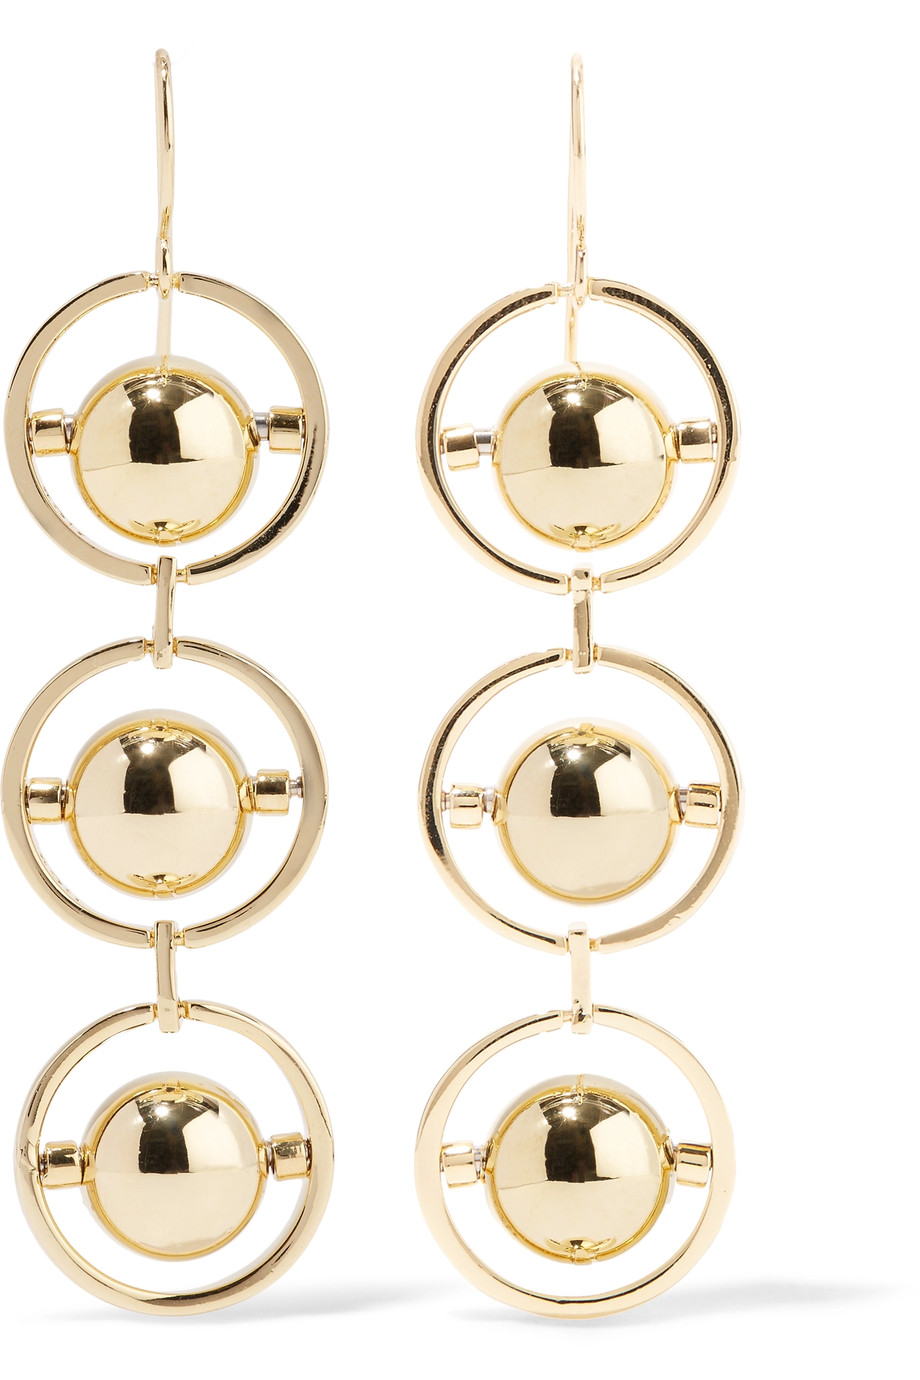 Noir Jewelry   Perigee Gold Tone Earrings , £32.50 on The Outnet -  super classy yet not too mushy